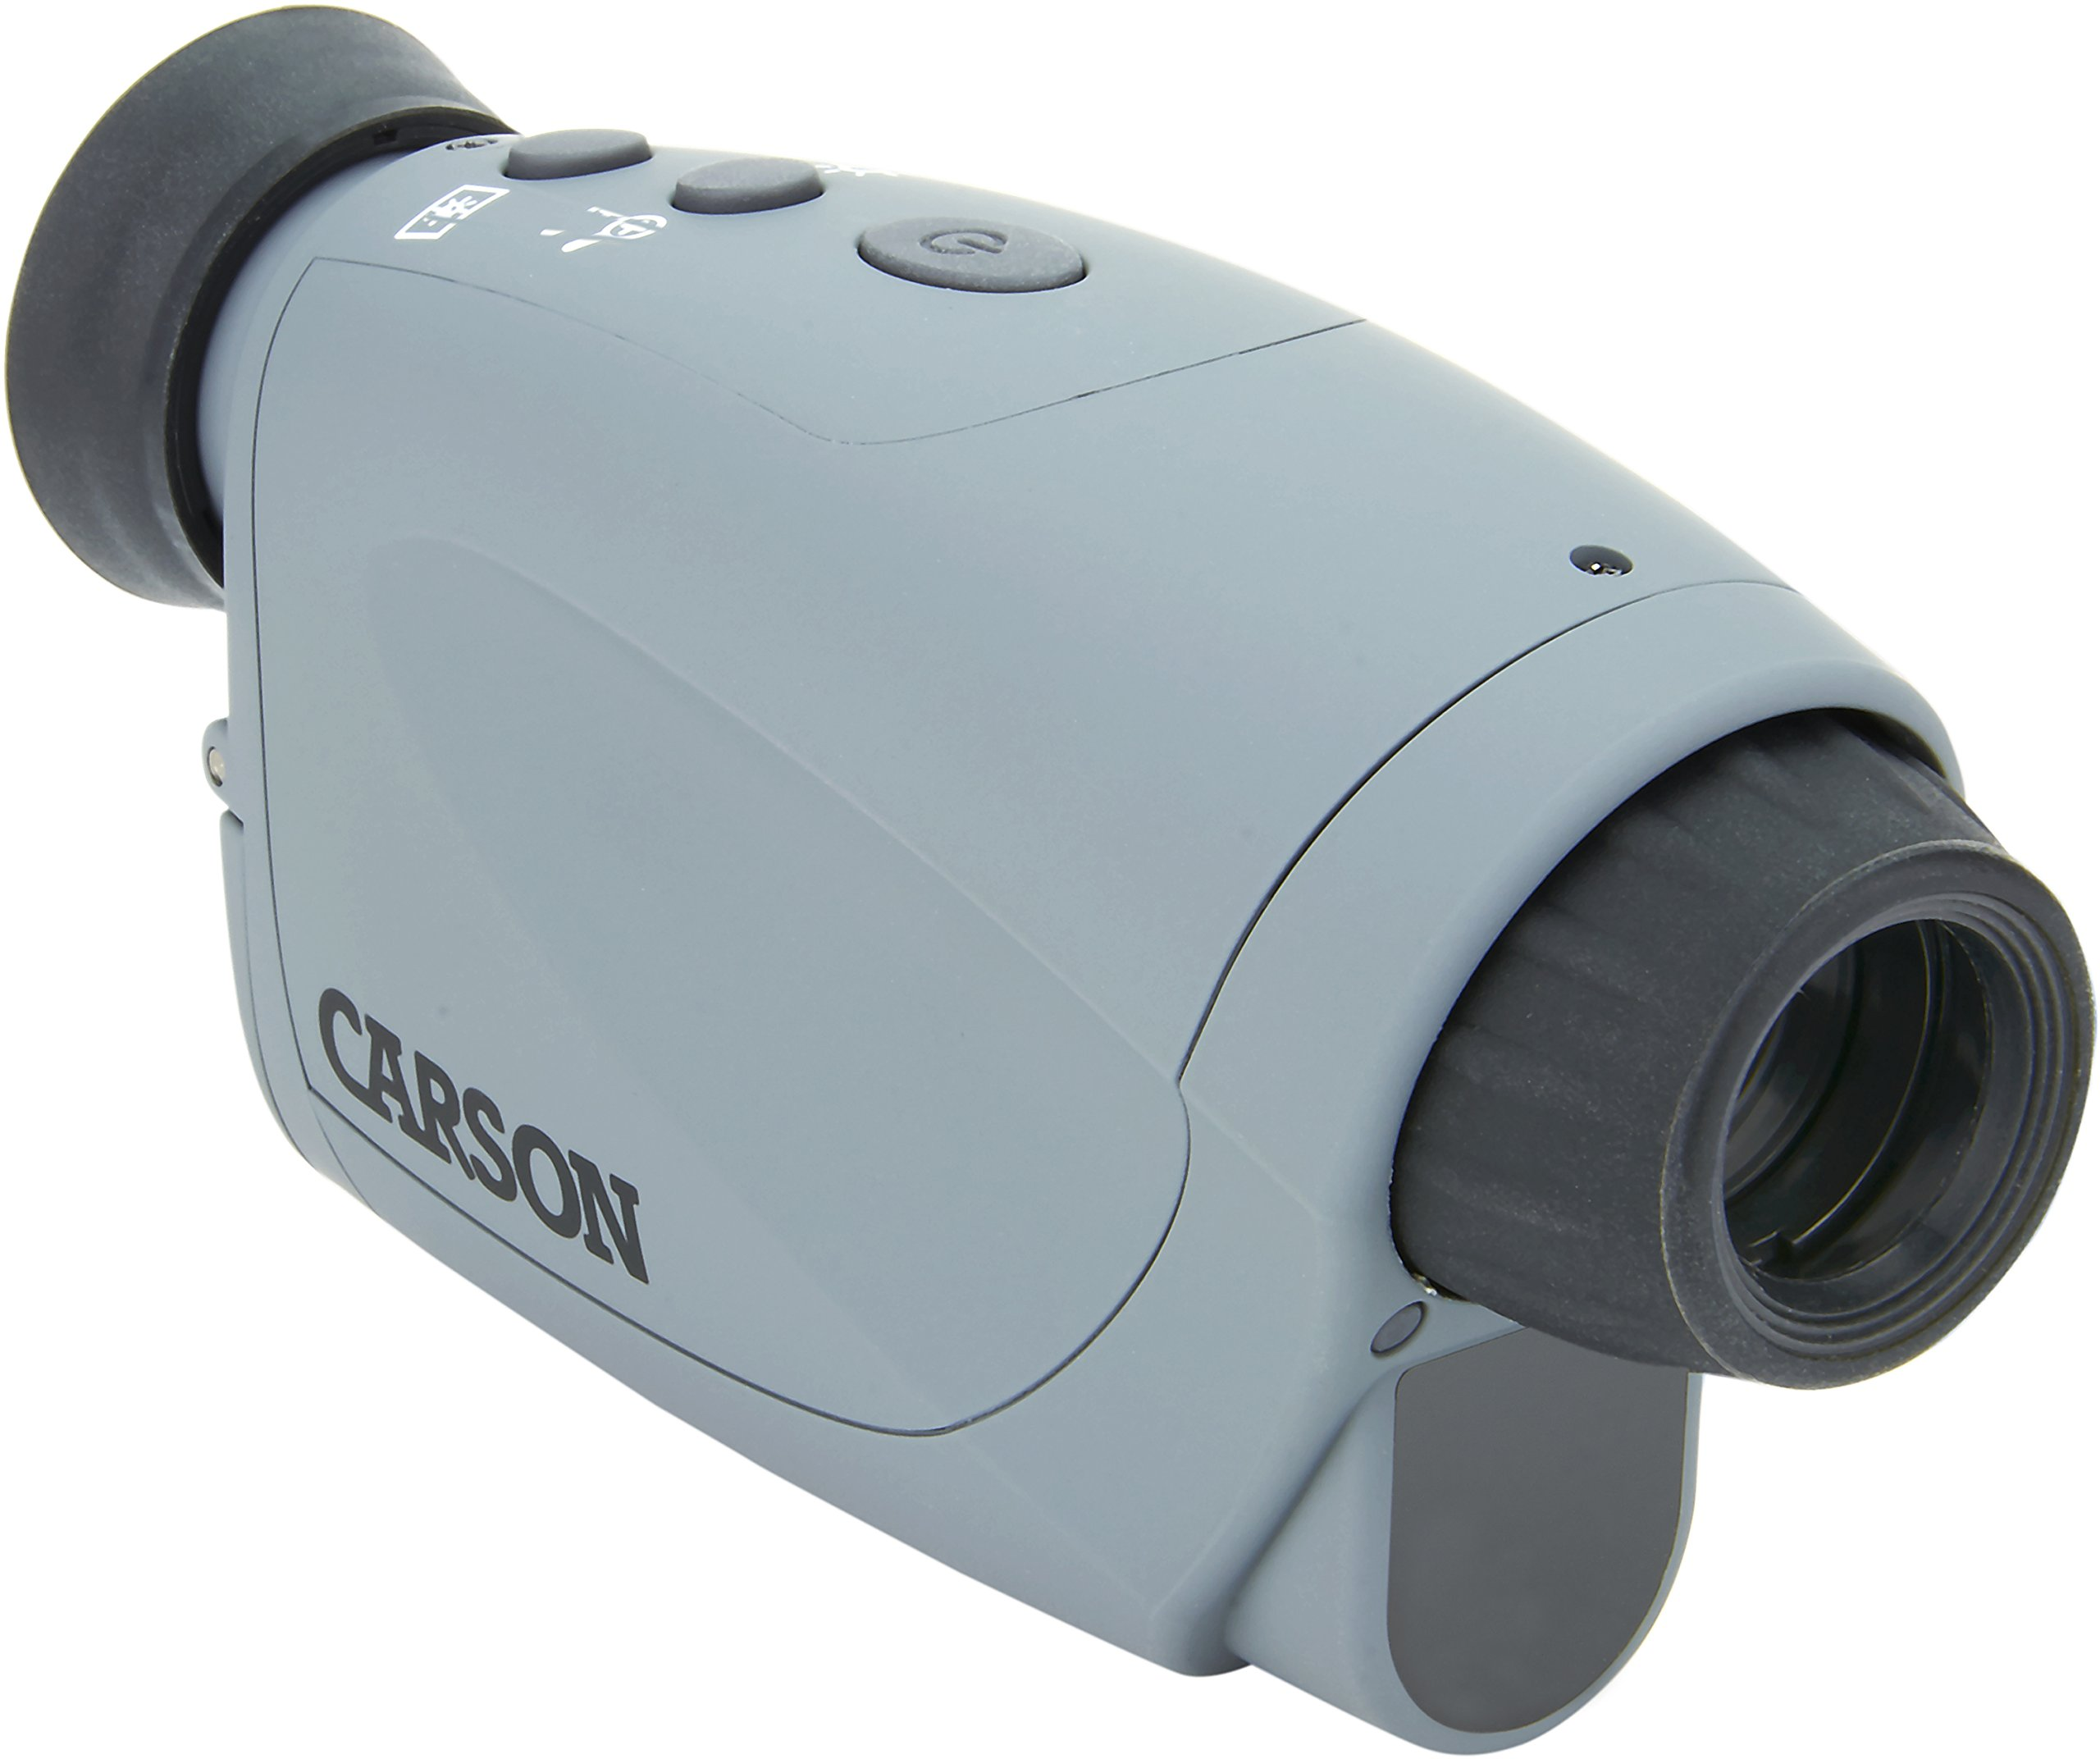 Carson Aura Digital Night Vision Monocular with Infrared Illuminator (NV-150) by Carson